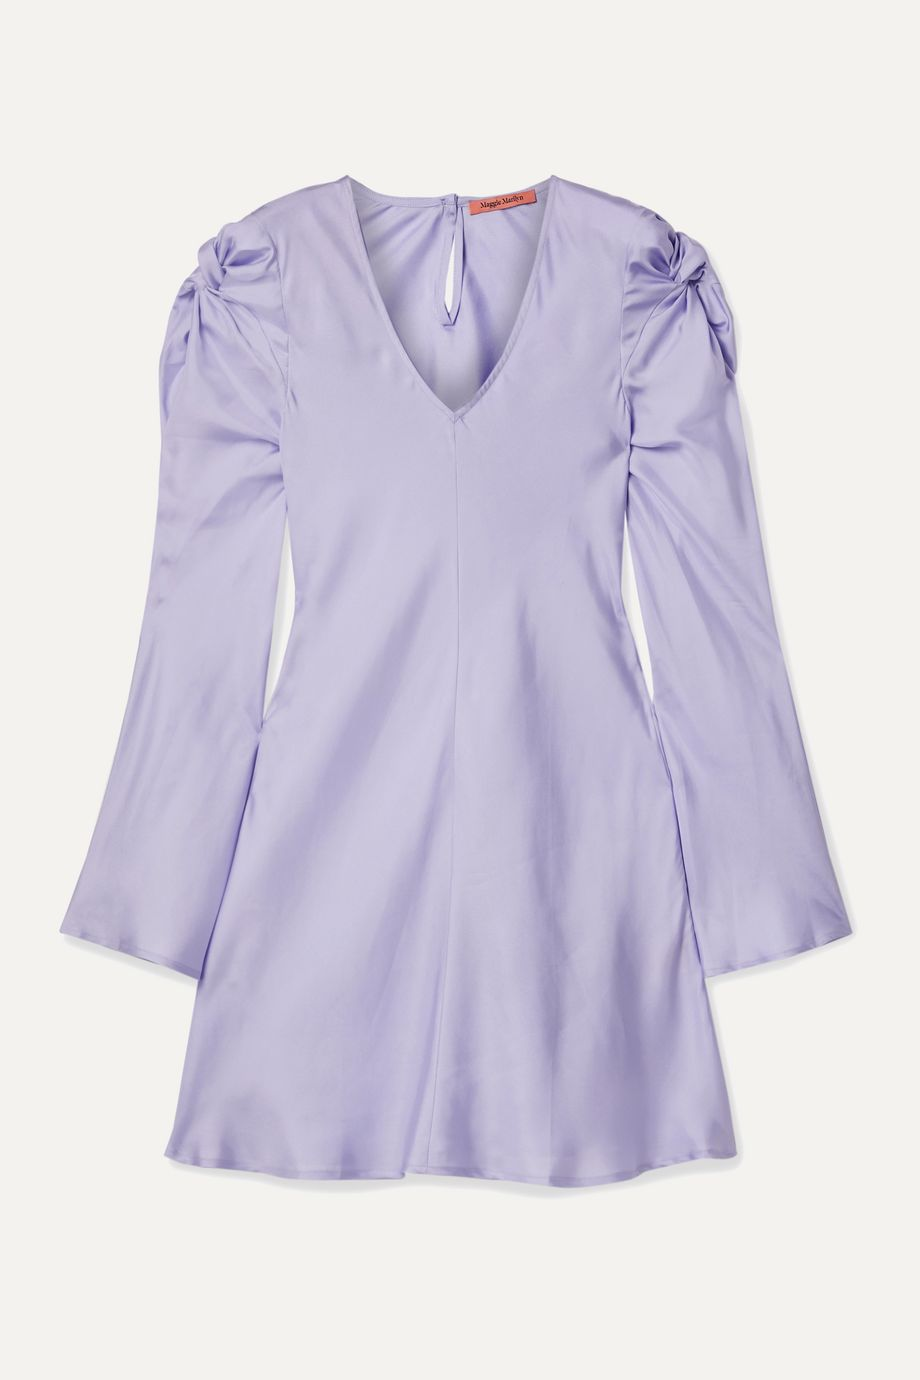 Maggie Marilyn + NET SUSTAIN Just in Time knotted silk-satin mini dress